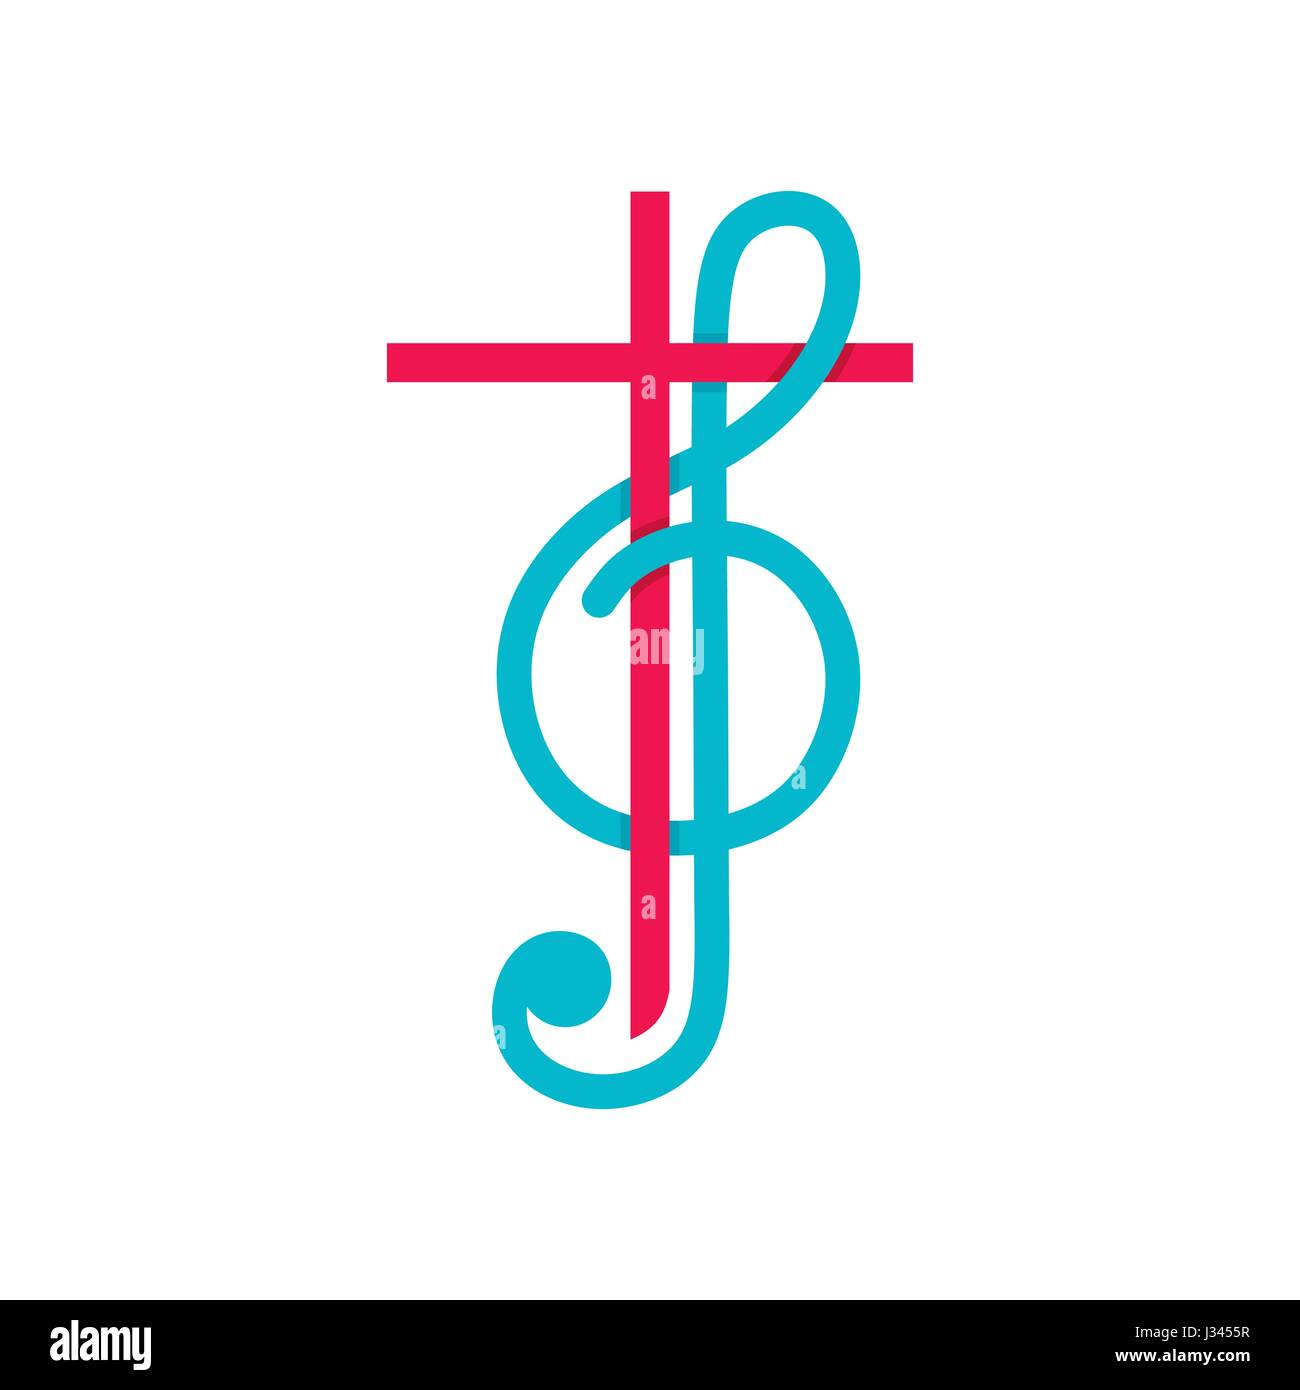 Church logo christian symbols the cross of jesus christ and christian symbols the cross of jesus christ and treble clef as a symbol of praise and worship to god buycottarizona Image collections